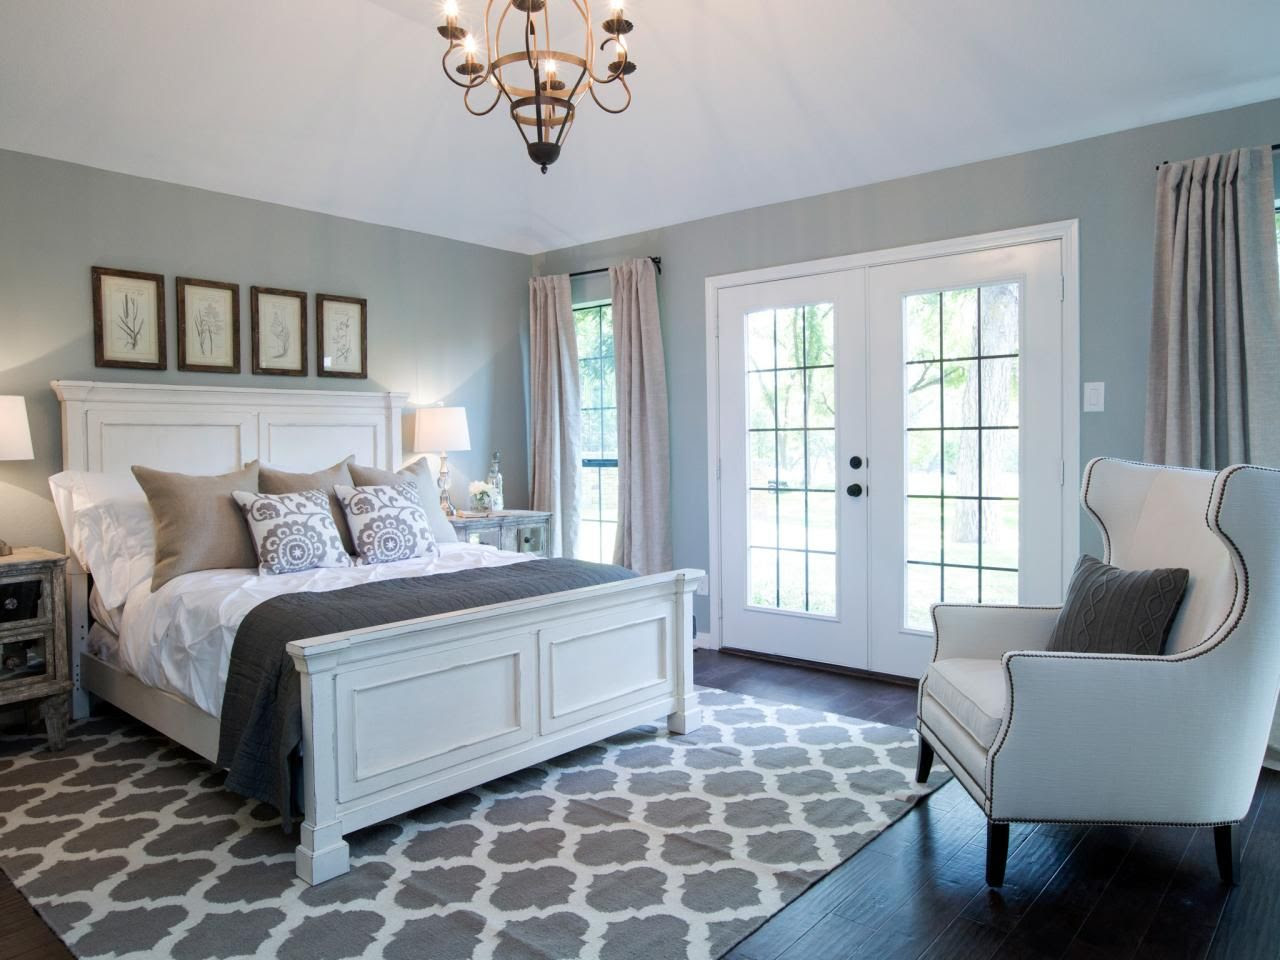 50 Best Master Bedroom Decorating Ideas with Images